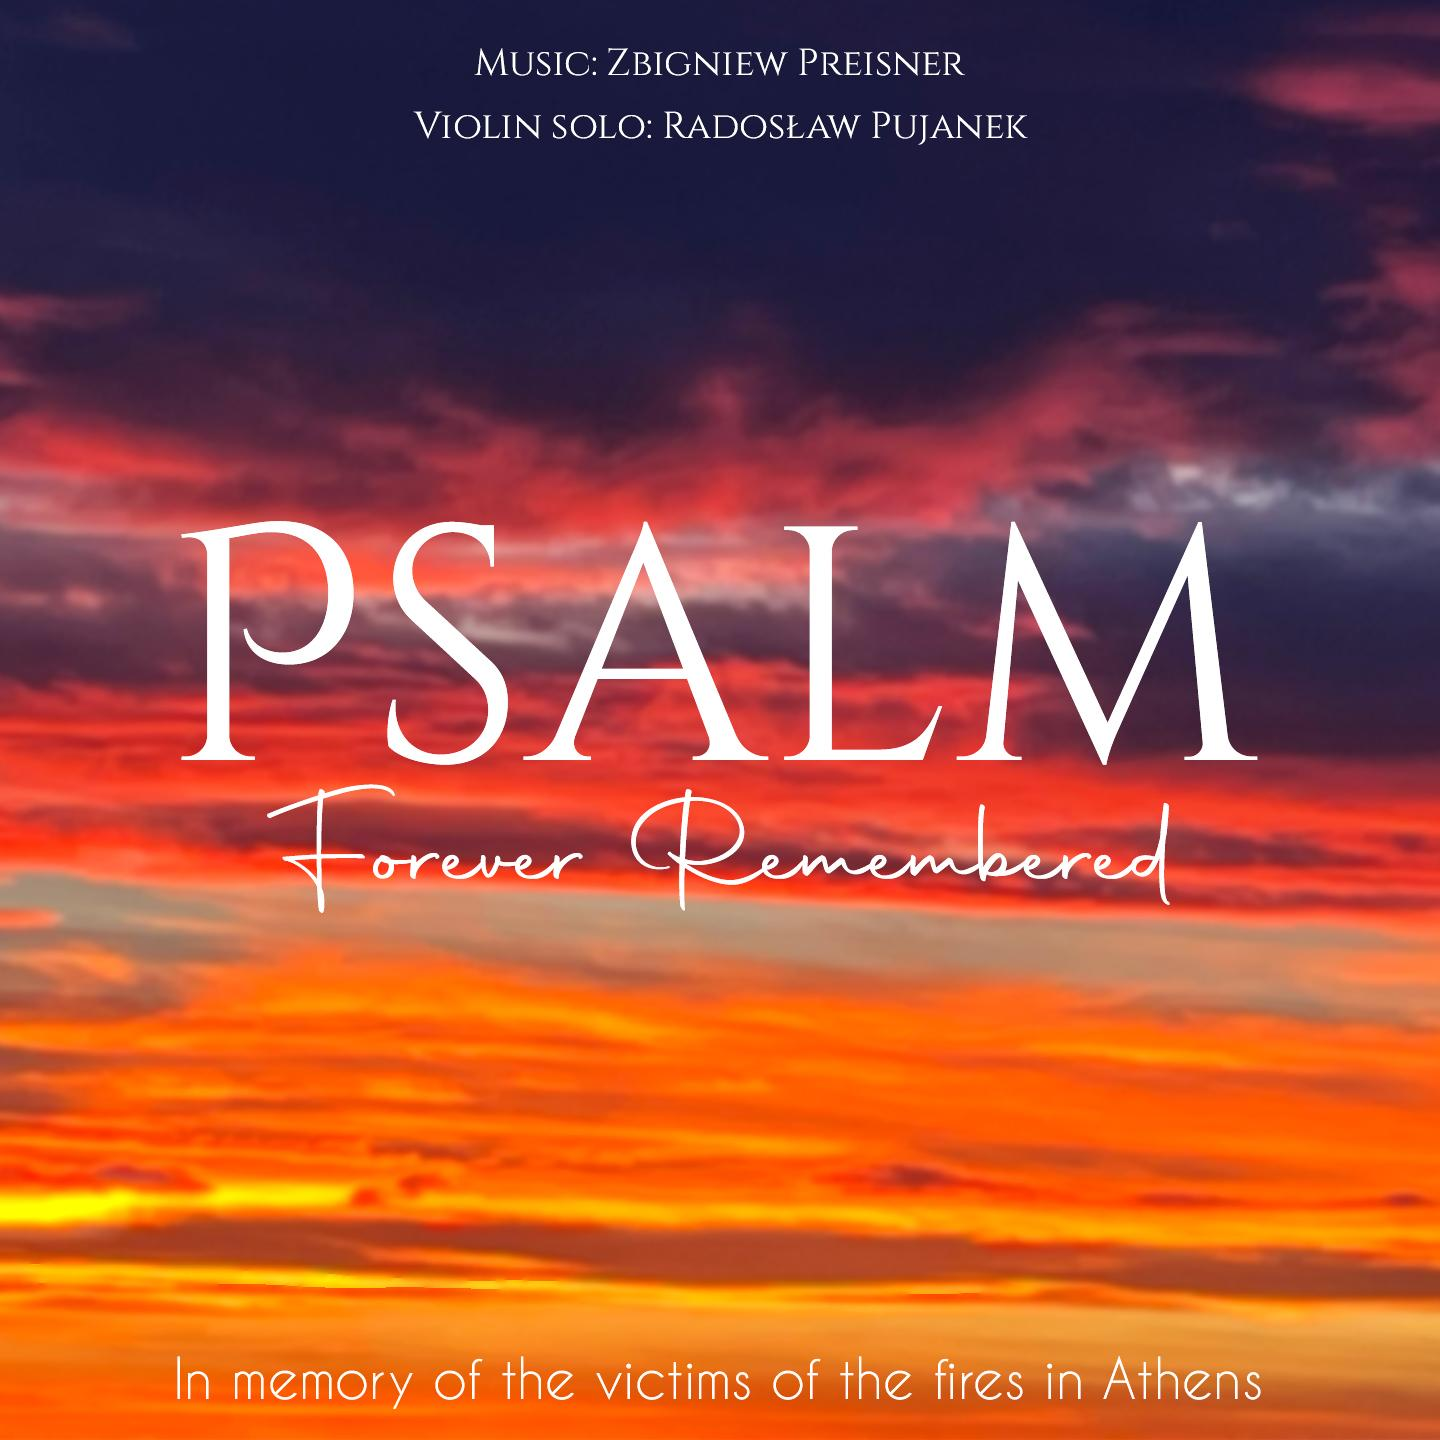 Psalm_Cover-min